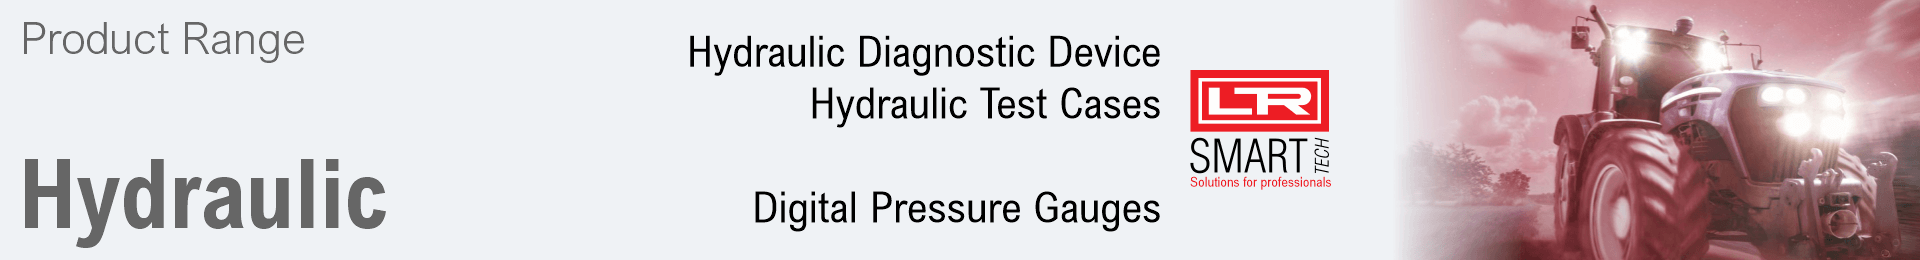 Product range LR SMART TECH Hydraulic: Diagnostic Device, Test Cases, Digital Pressure Gauges